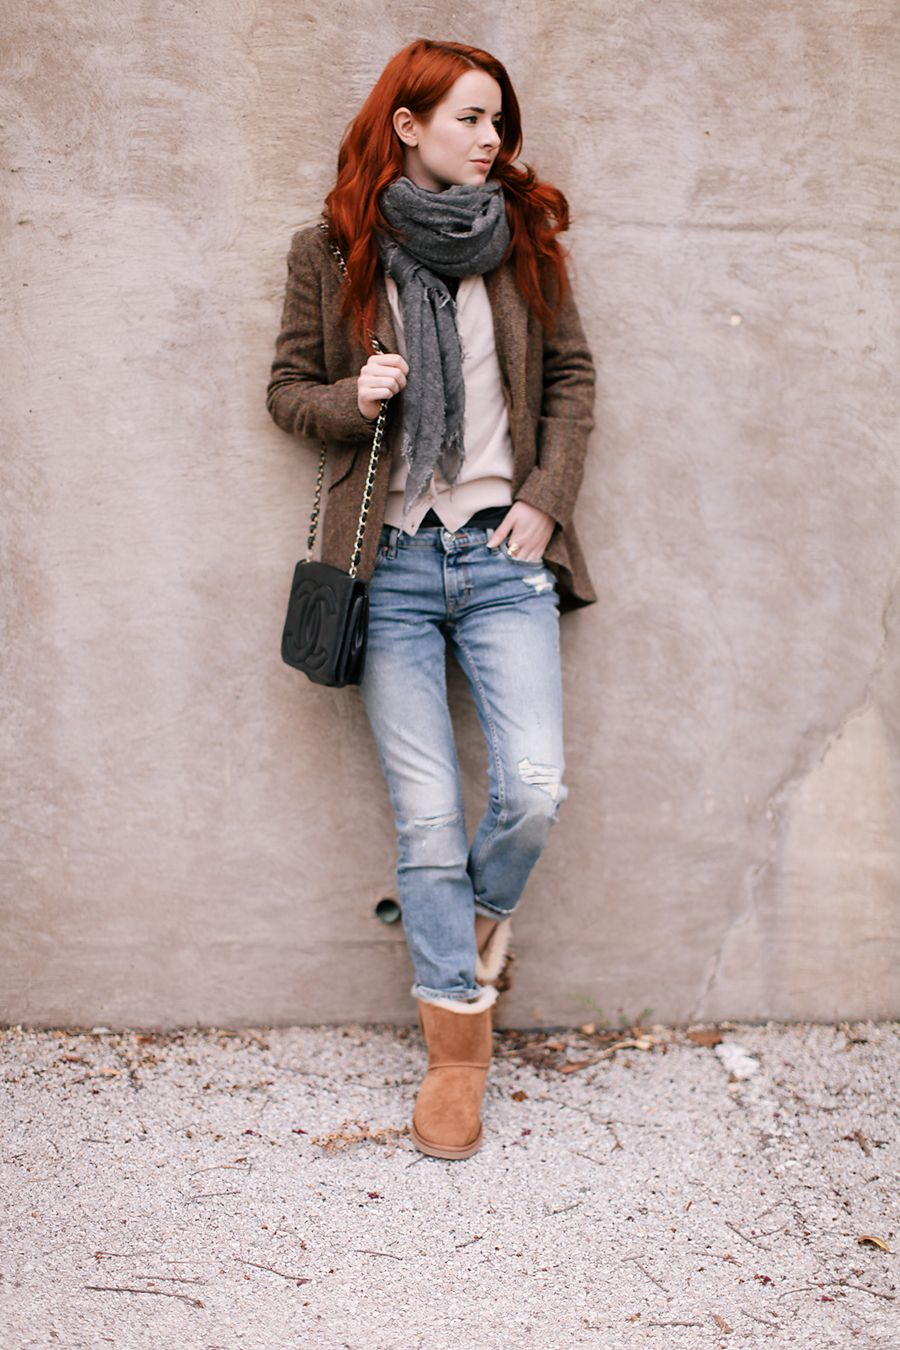 b436b708d Stylish Ways to Wear Uggs This Winter | Boots | Uggs, Winter fashion ...